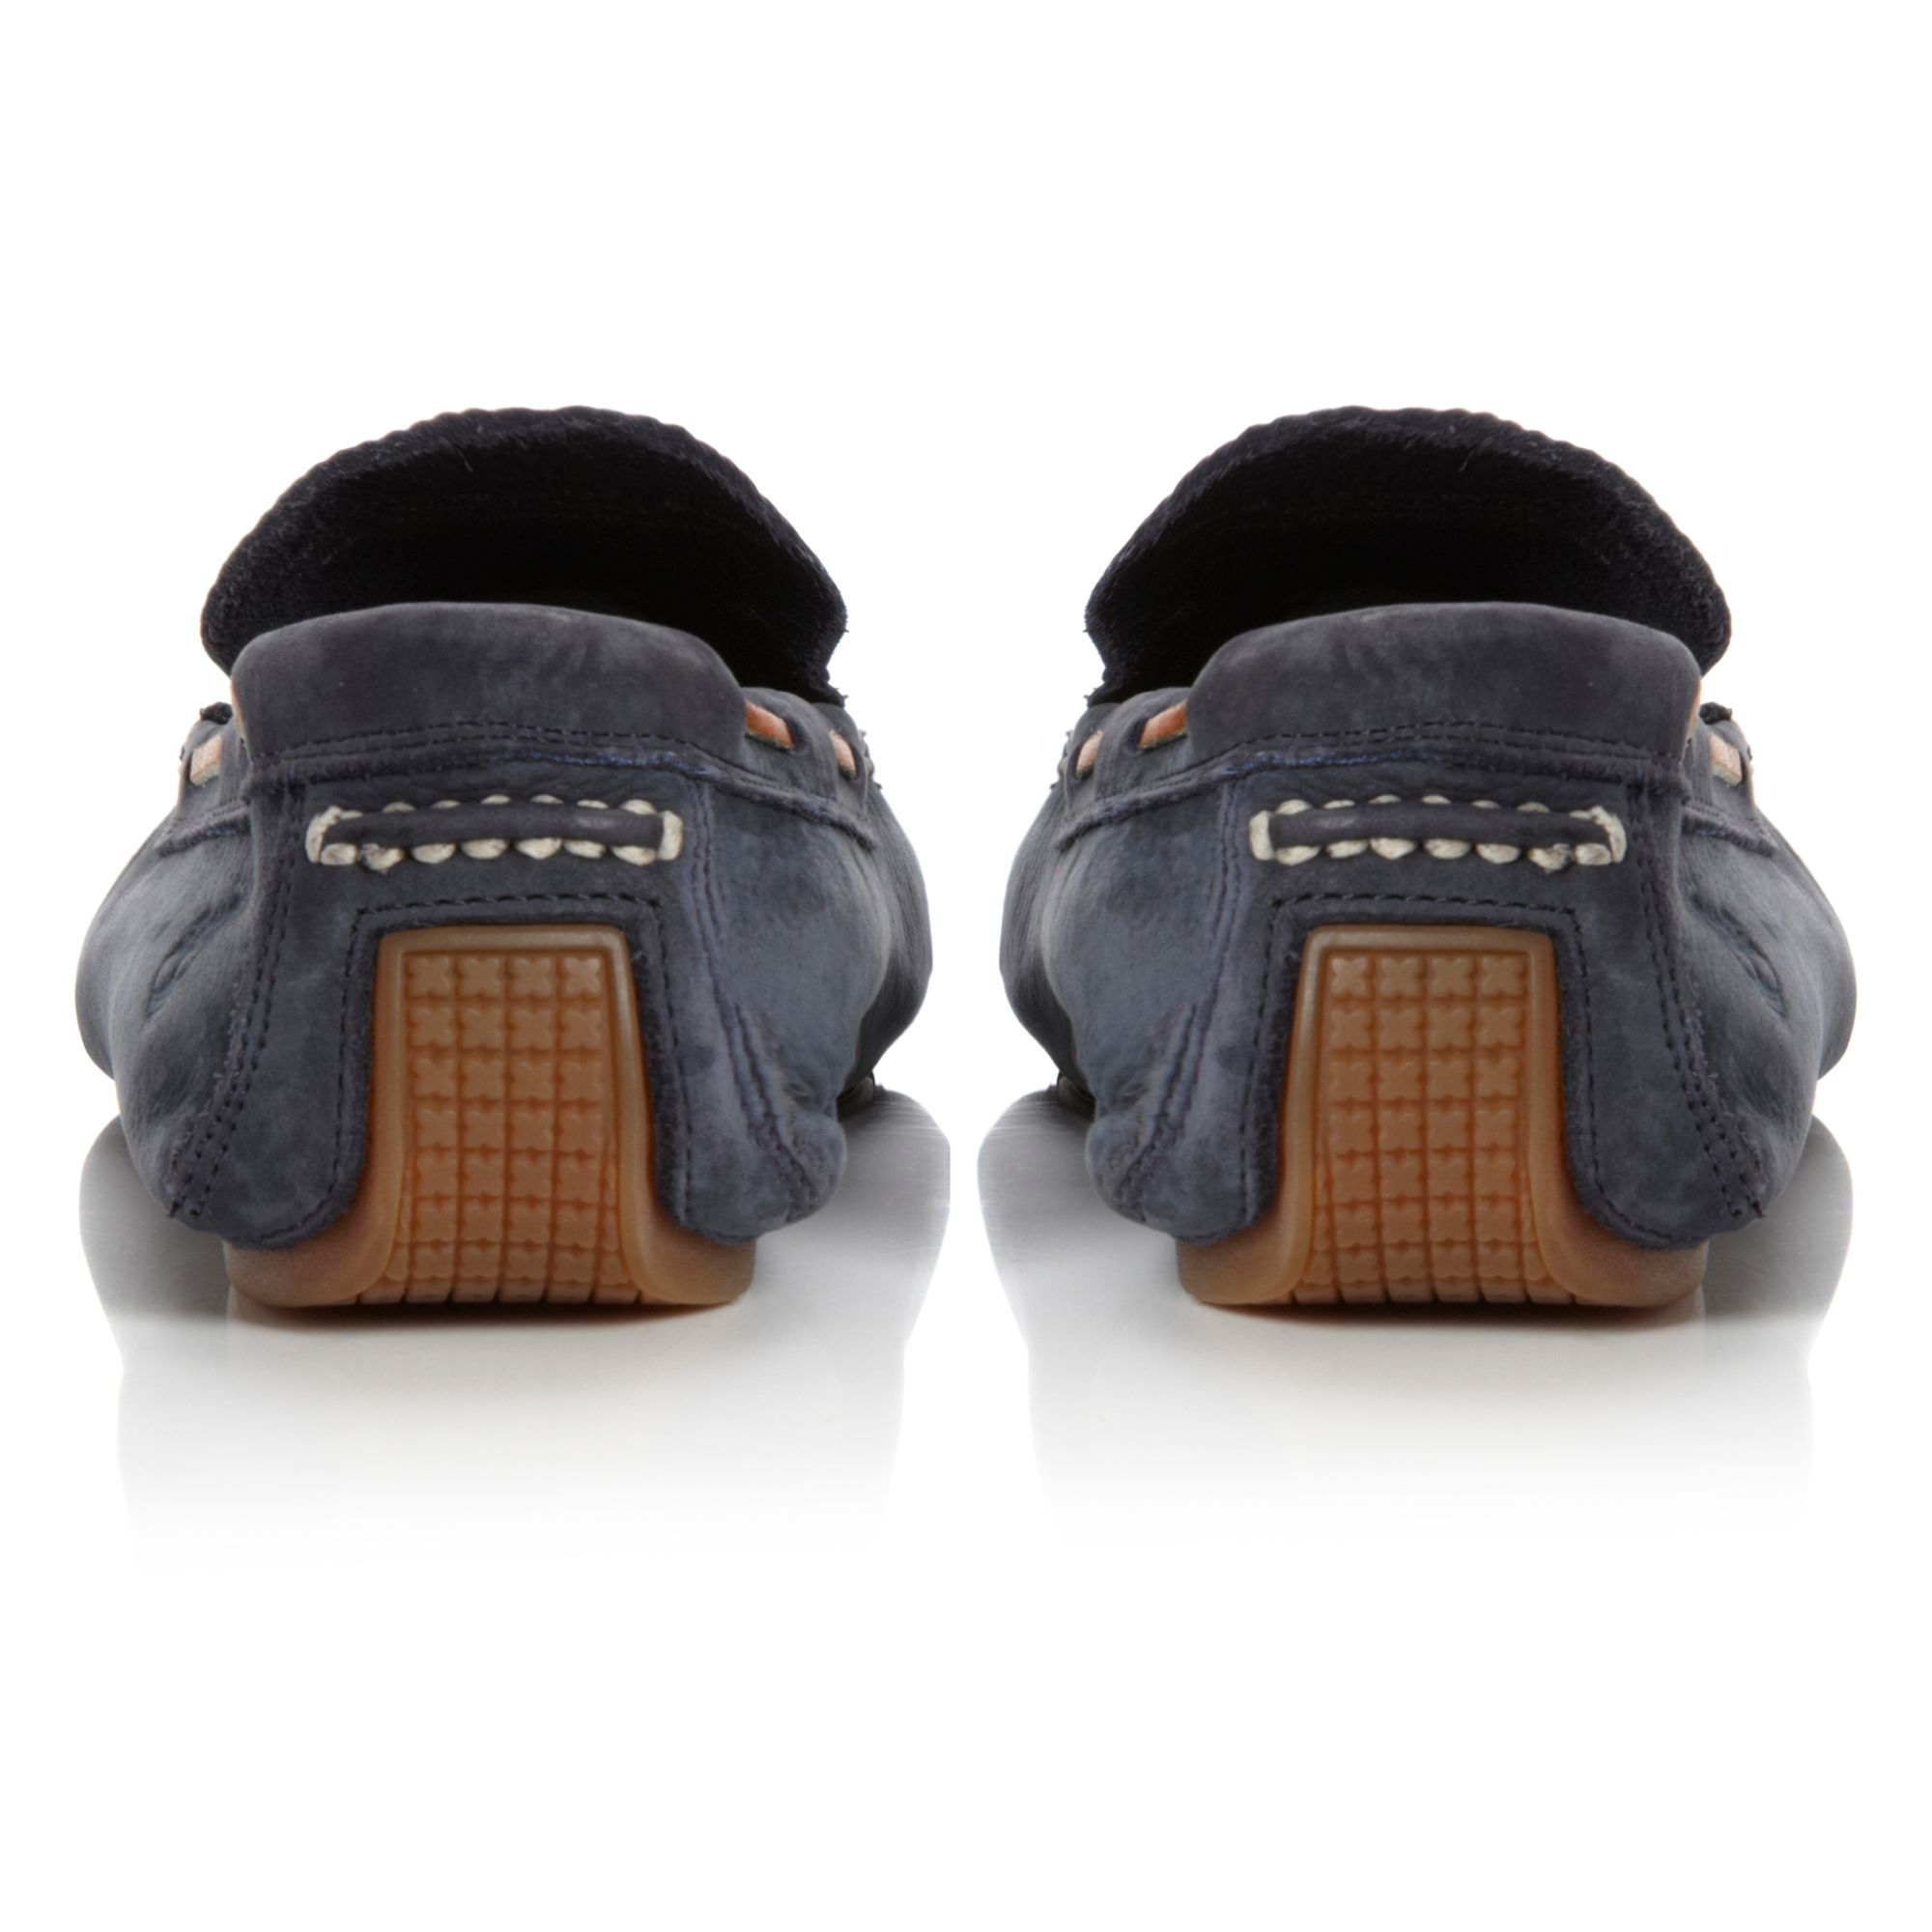 6649R contrast stitch driver shoes